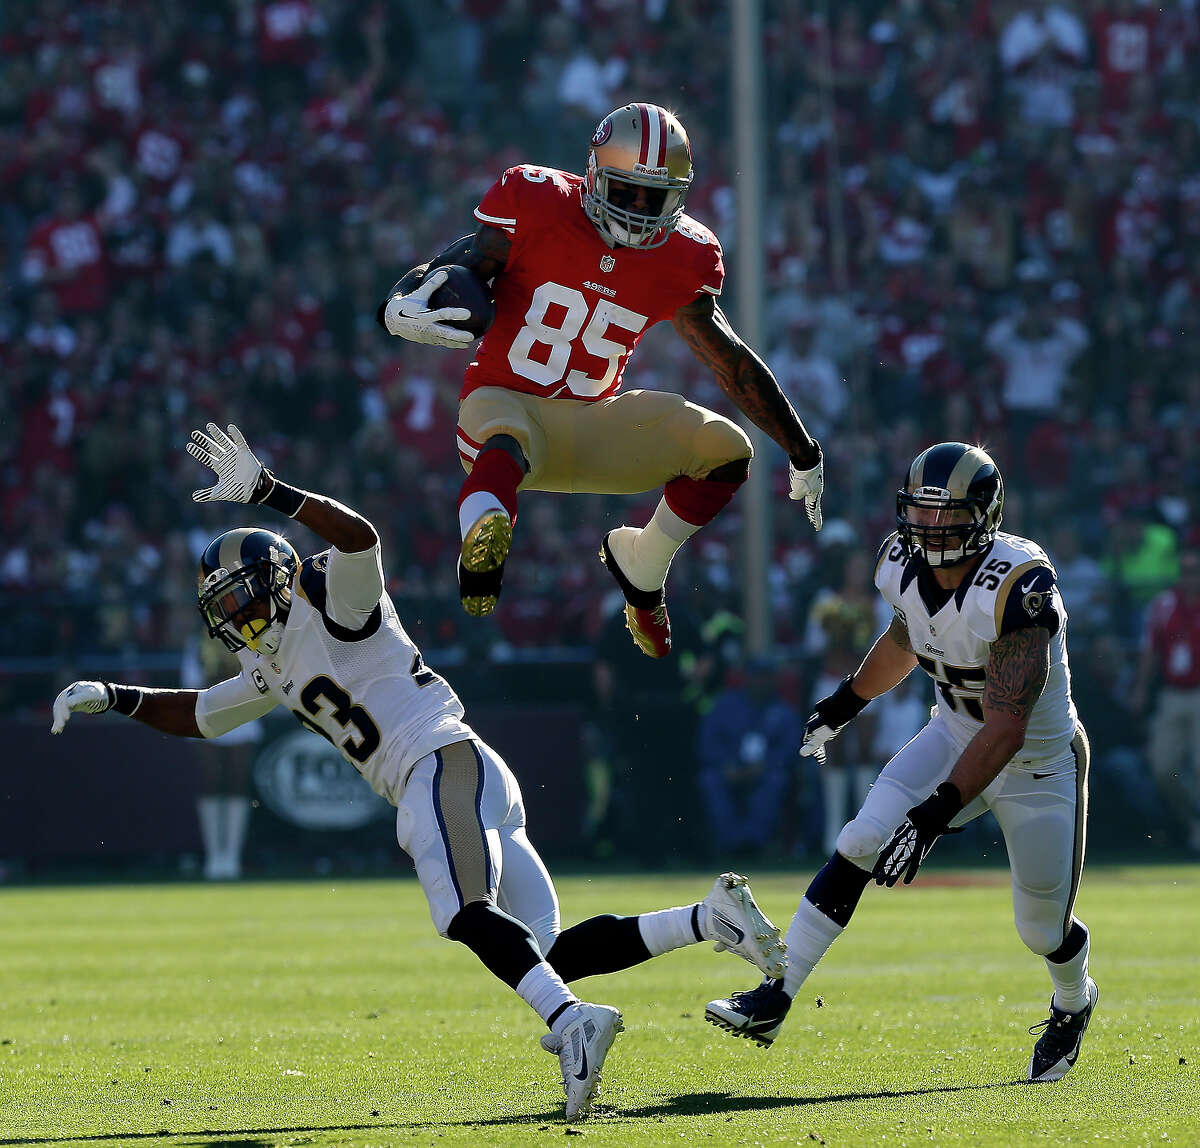 Vernon Davis goes high over two defenders in a big catch in the first half. The San Francisco 49ers vs the St. Louis Rams at Candlestick Park Sunday December 1, 2013.